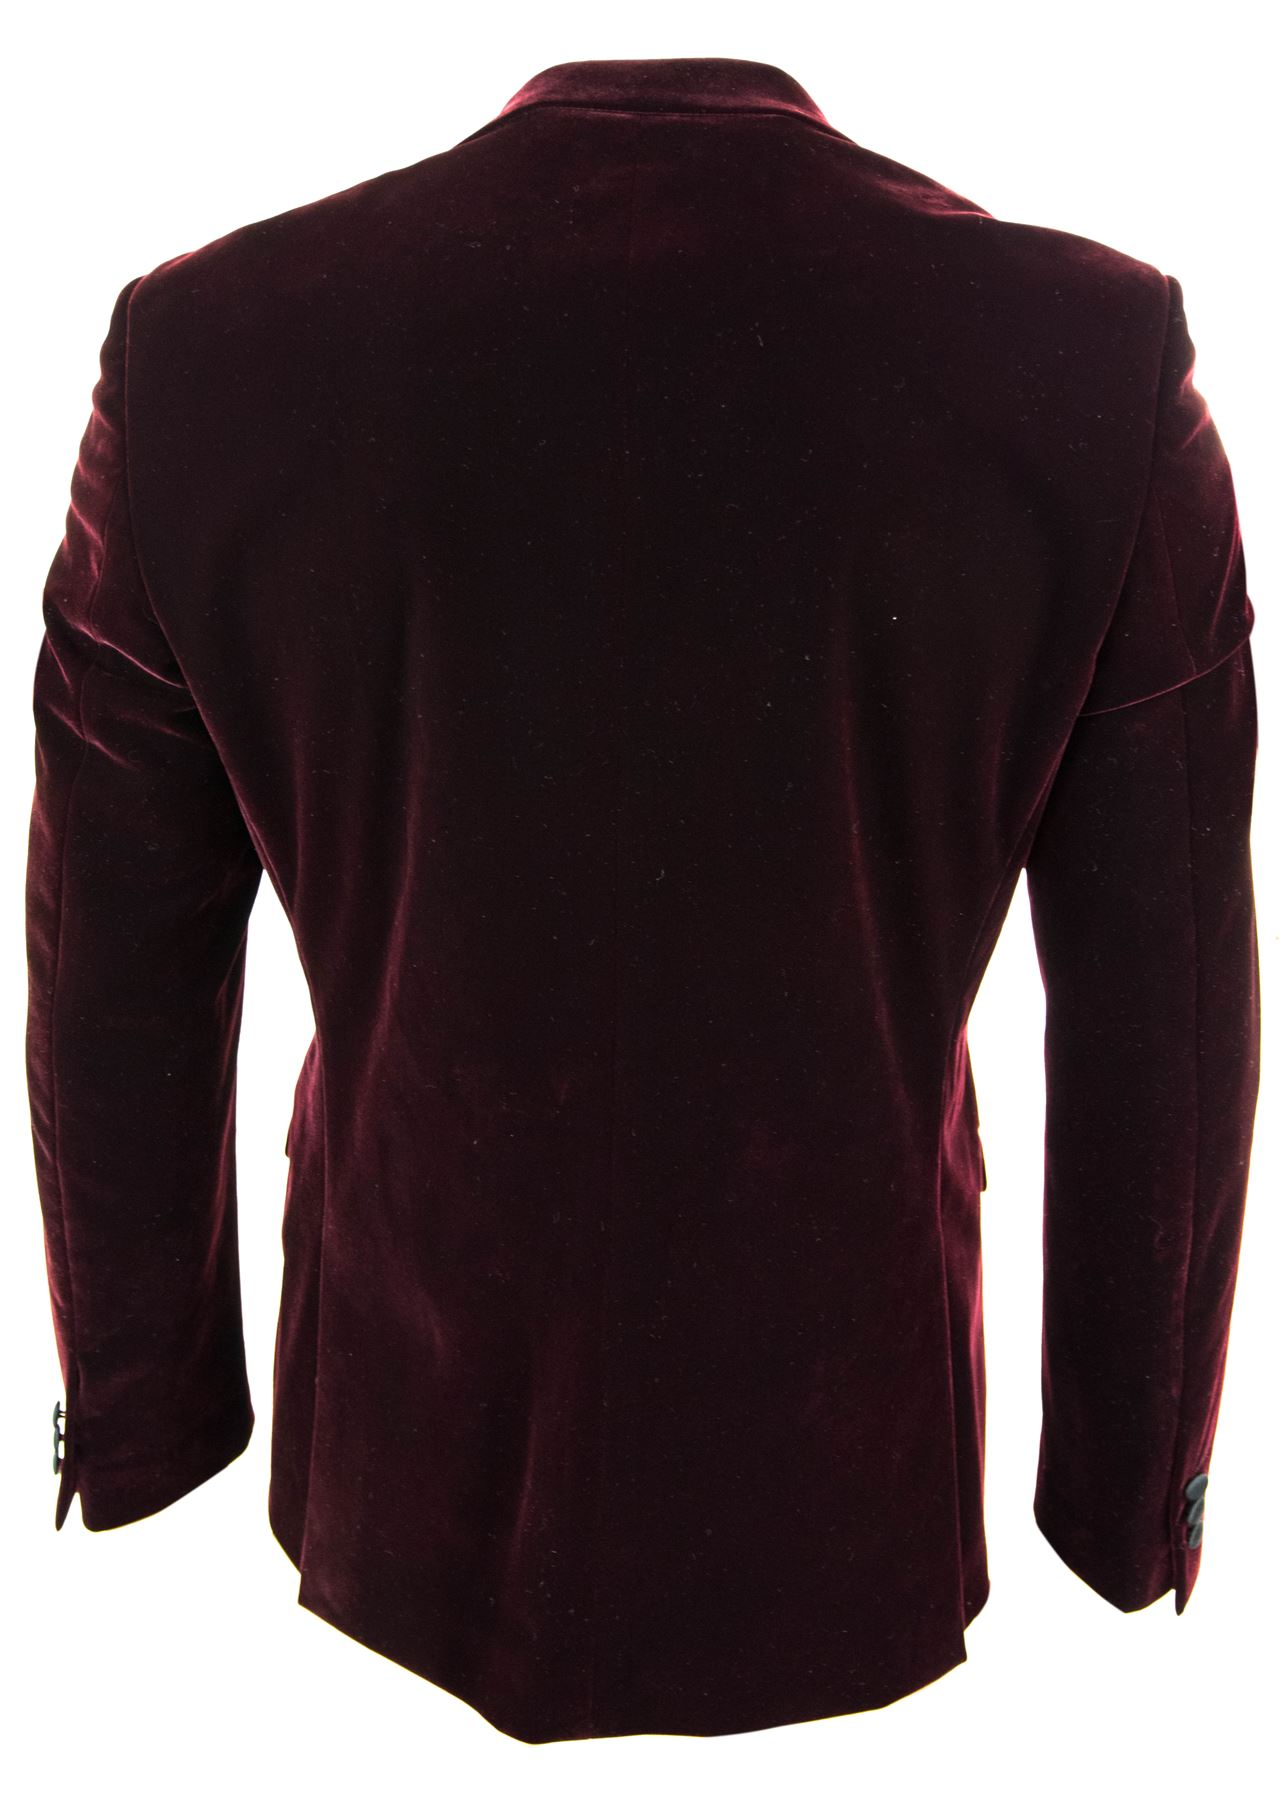 veste homme blazer velours doux bordeaux grenat style chic formel ebay. Black Bedroom Furniture Sets. Home Design Ideas